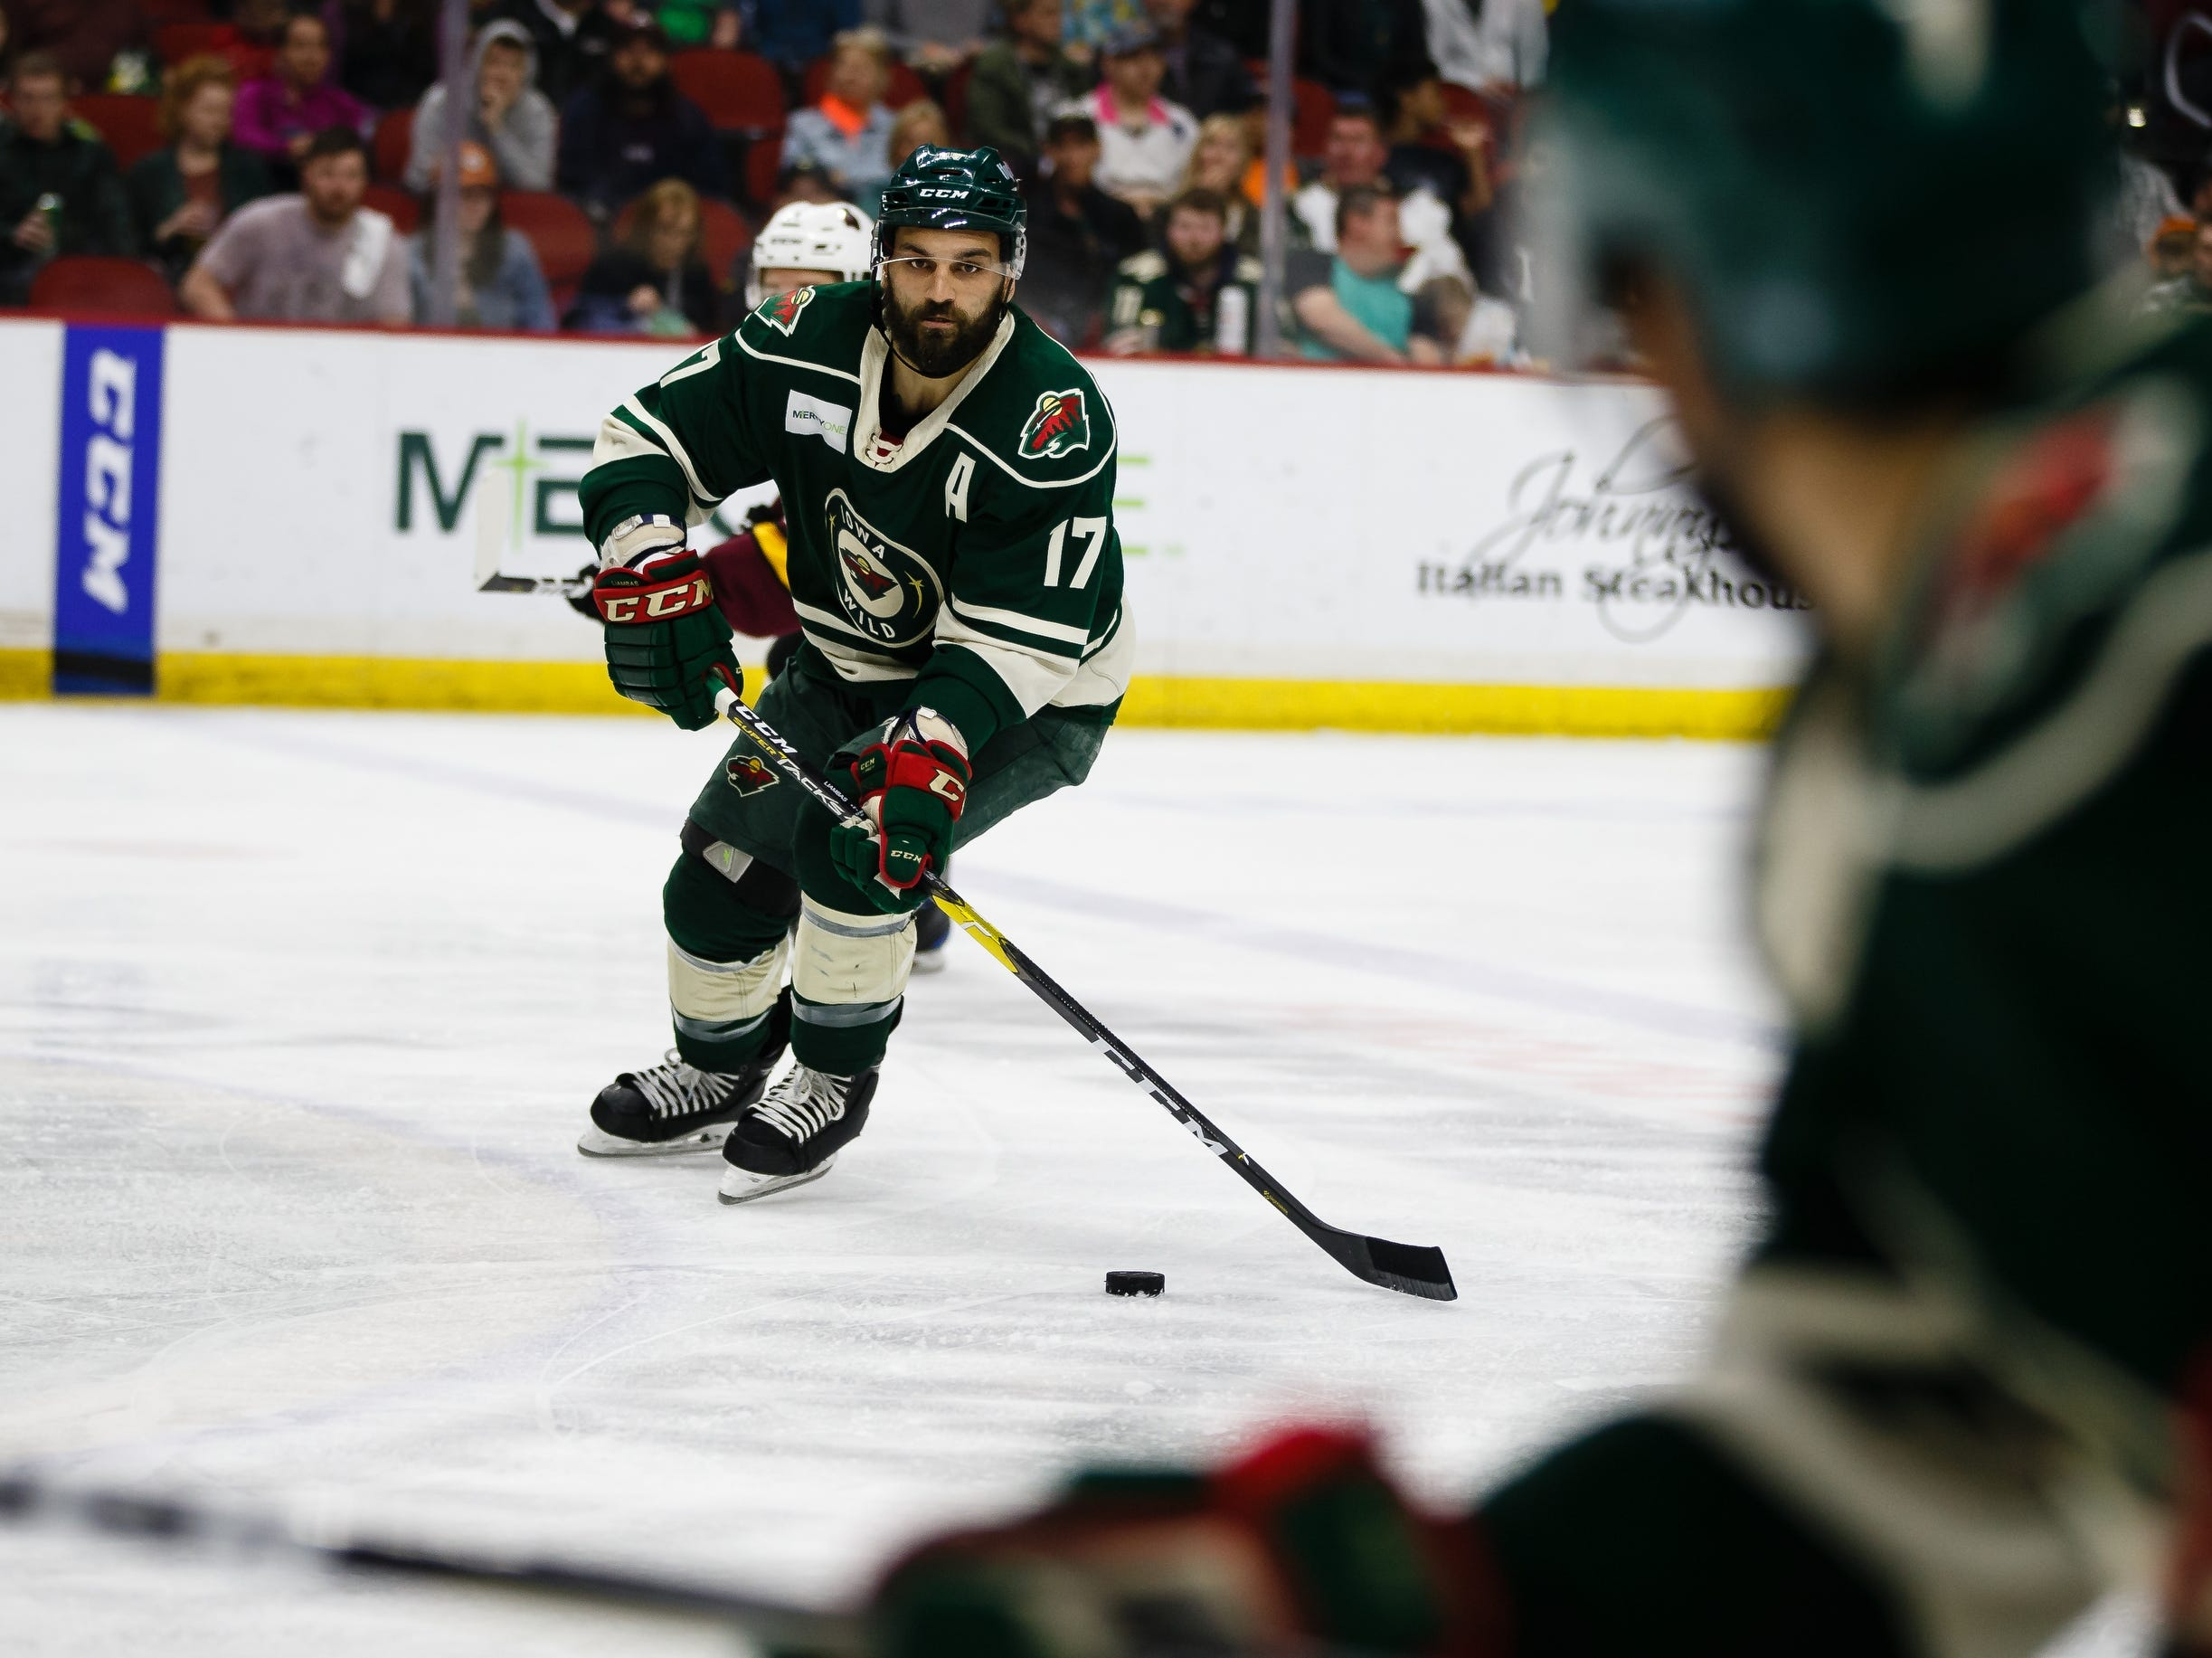 The Iowa Wild's Mike Liambas looks for a pass during the second period of their Calder Cup playoff hockey game against the Chicago Wolves on Friday, May 10, 2019, in Des Moines.